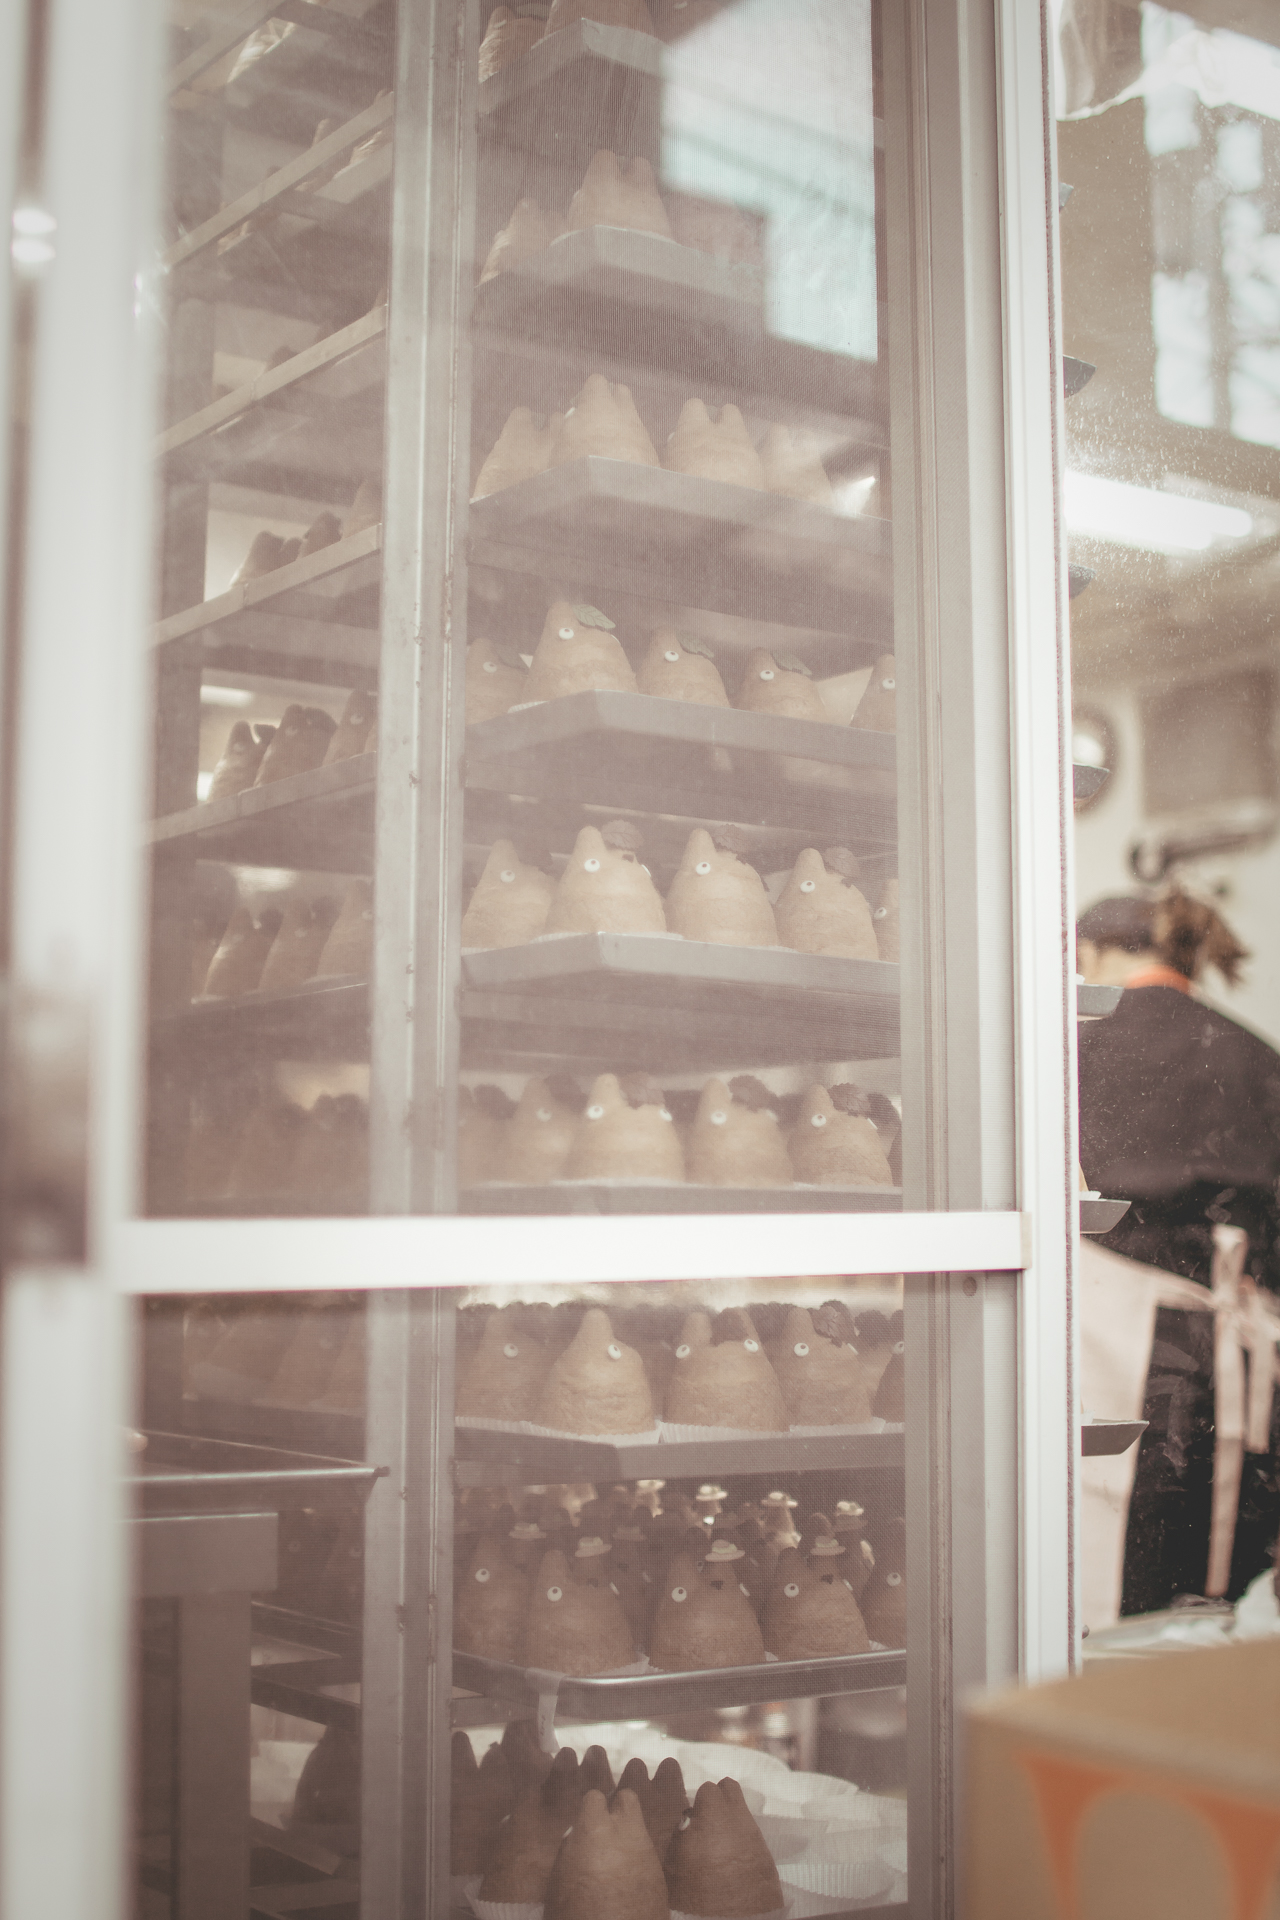 A glimpse inside the bakery.